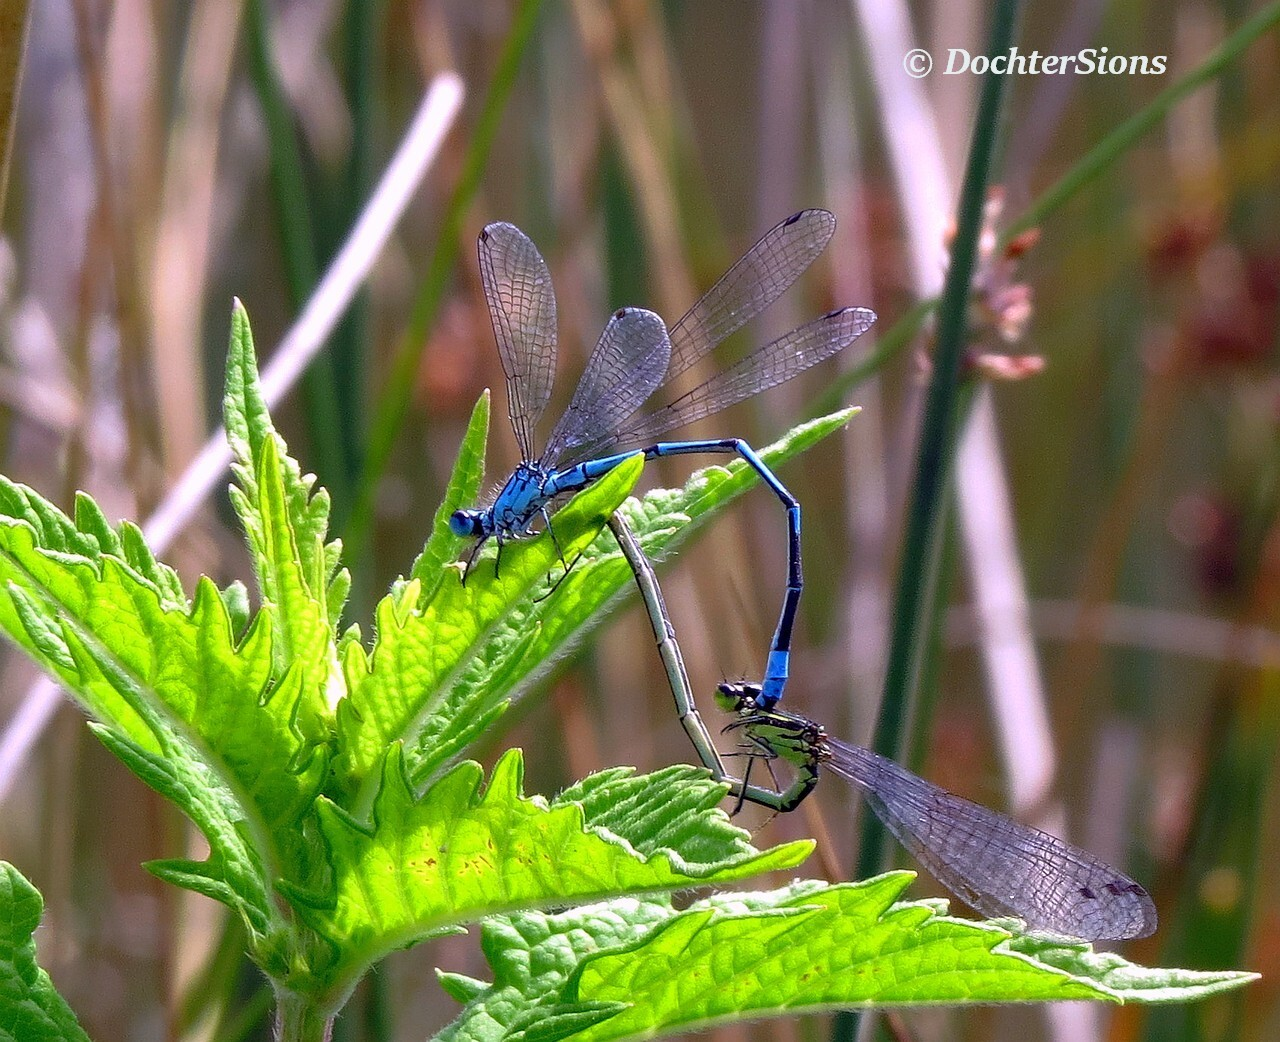 Two mating Damselflies by dochtersions